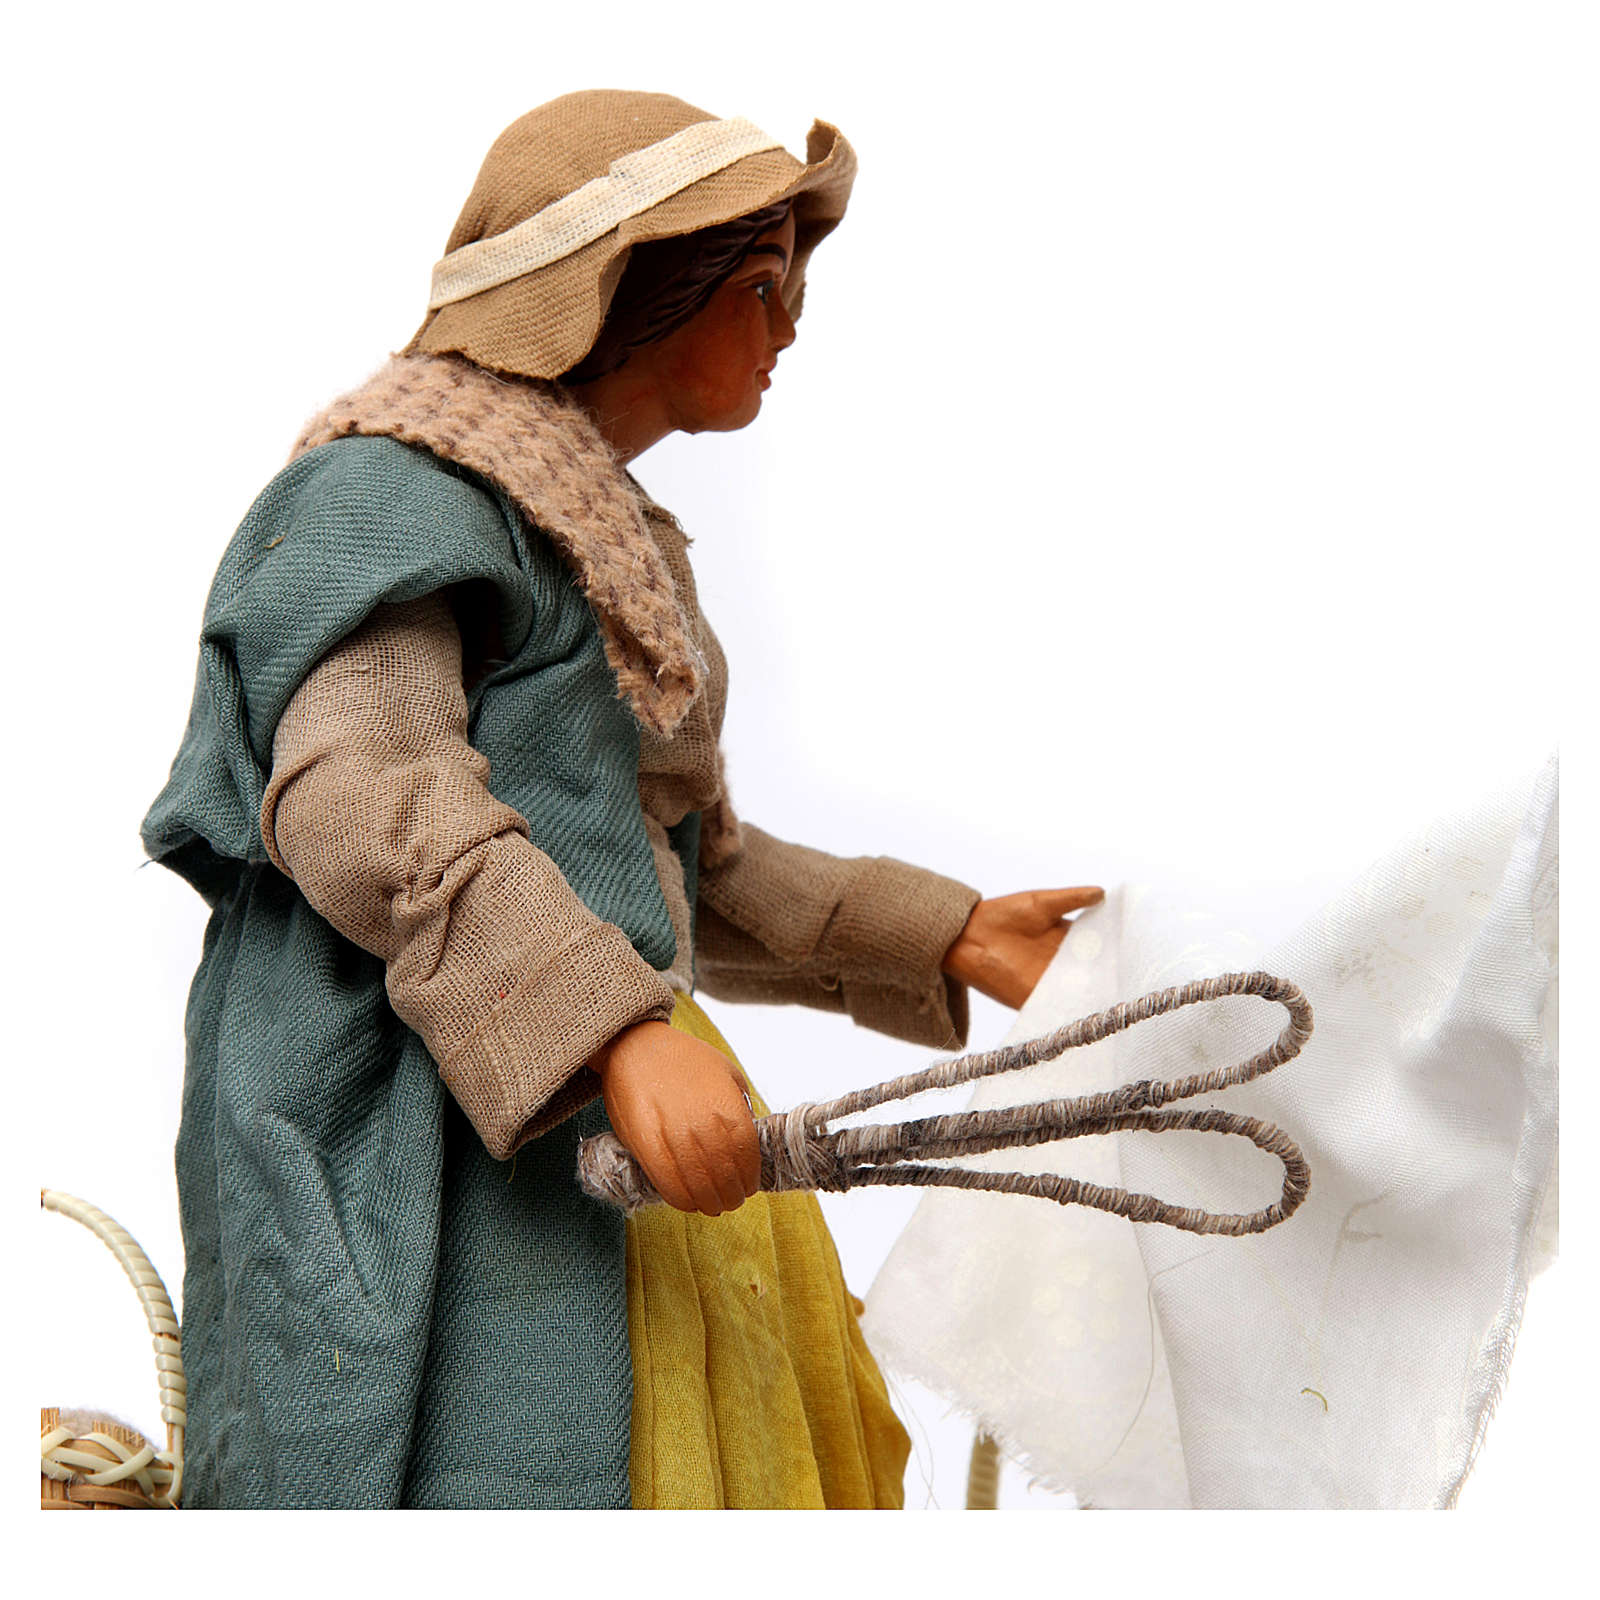 Moving Woman that Flails Cloths from Naples 24 cm 4